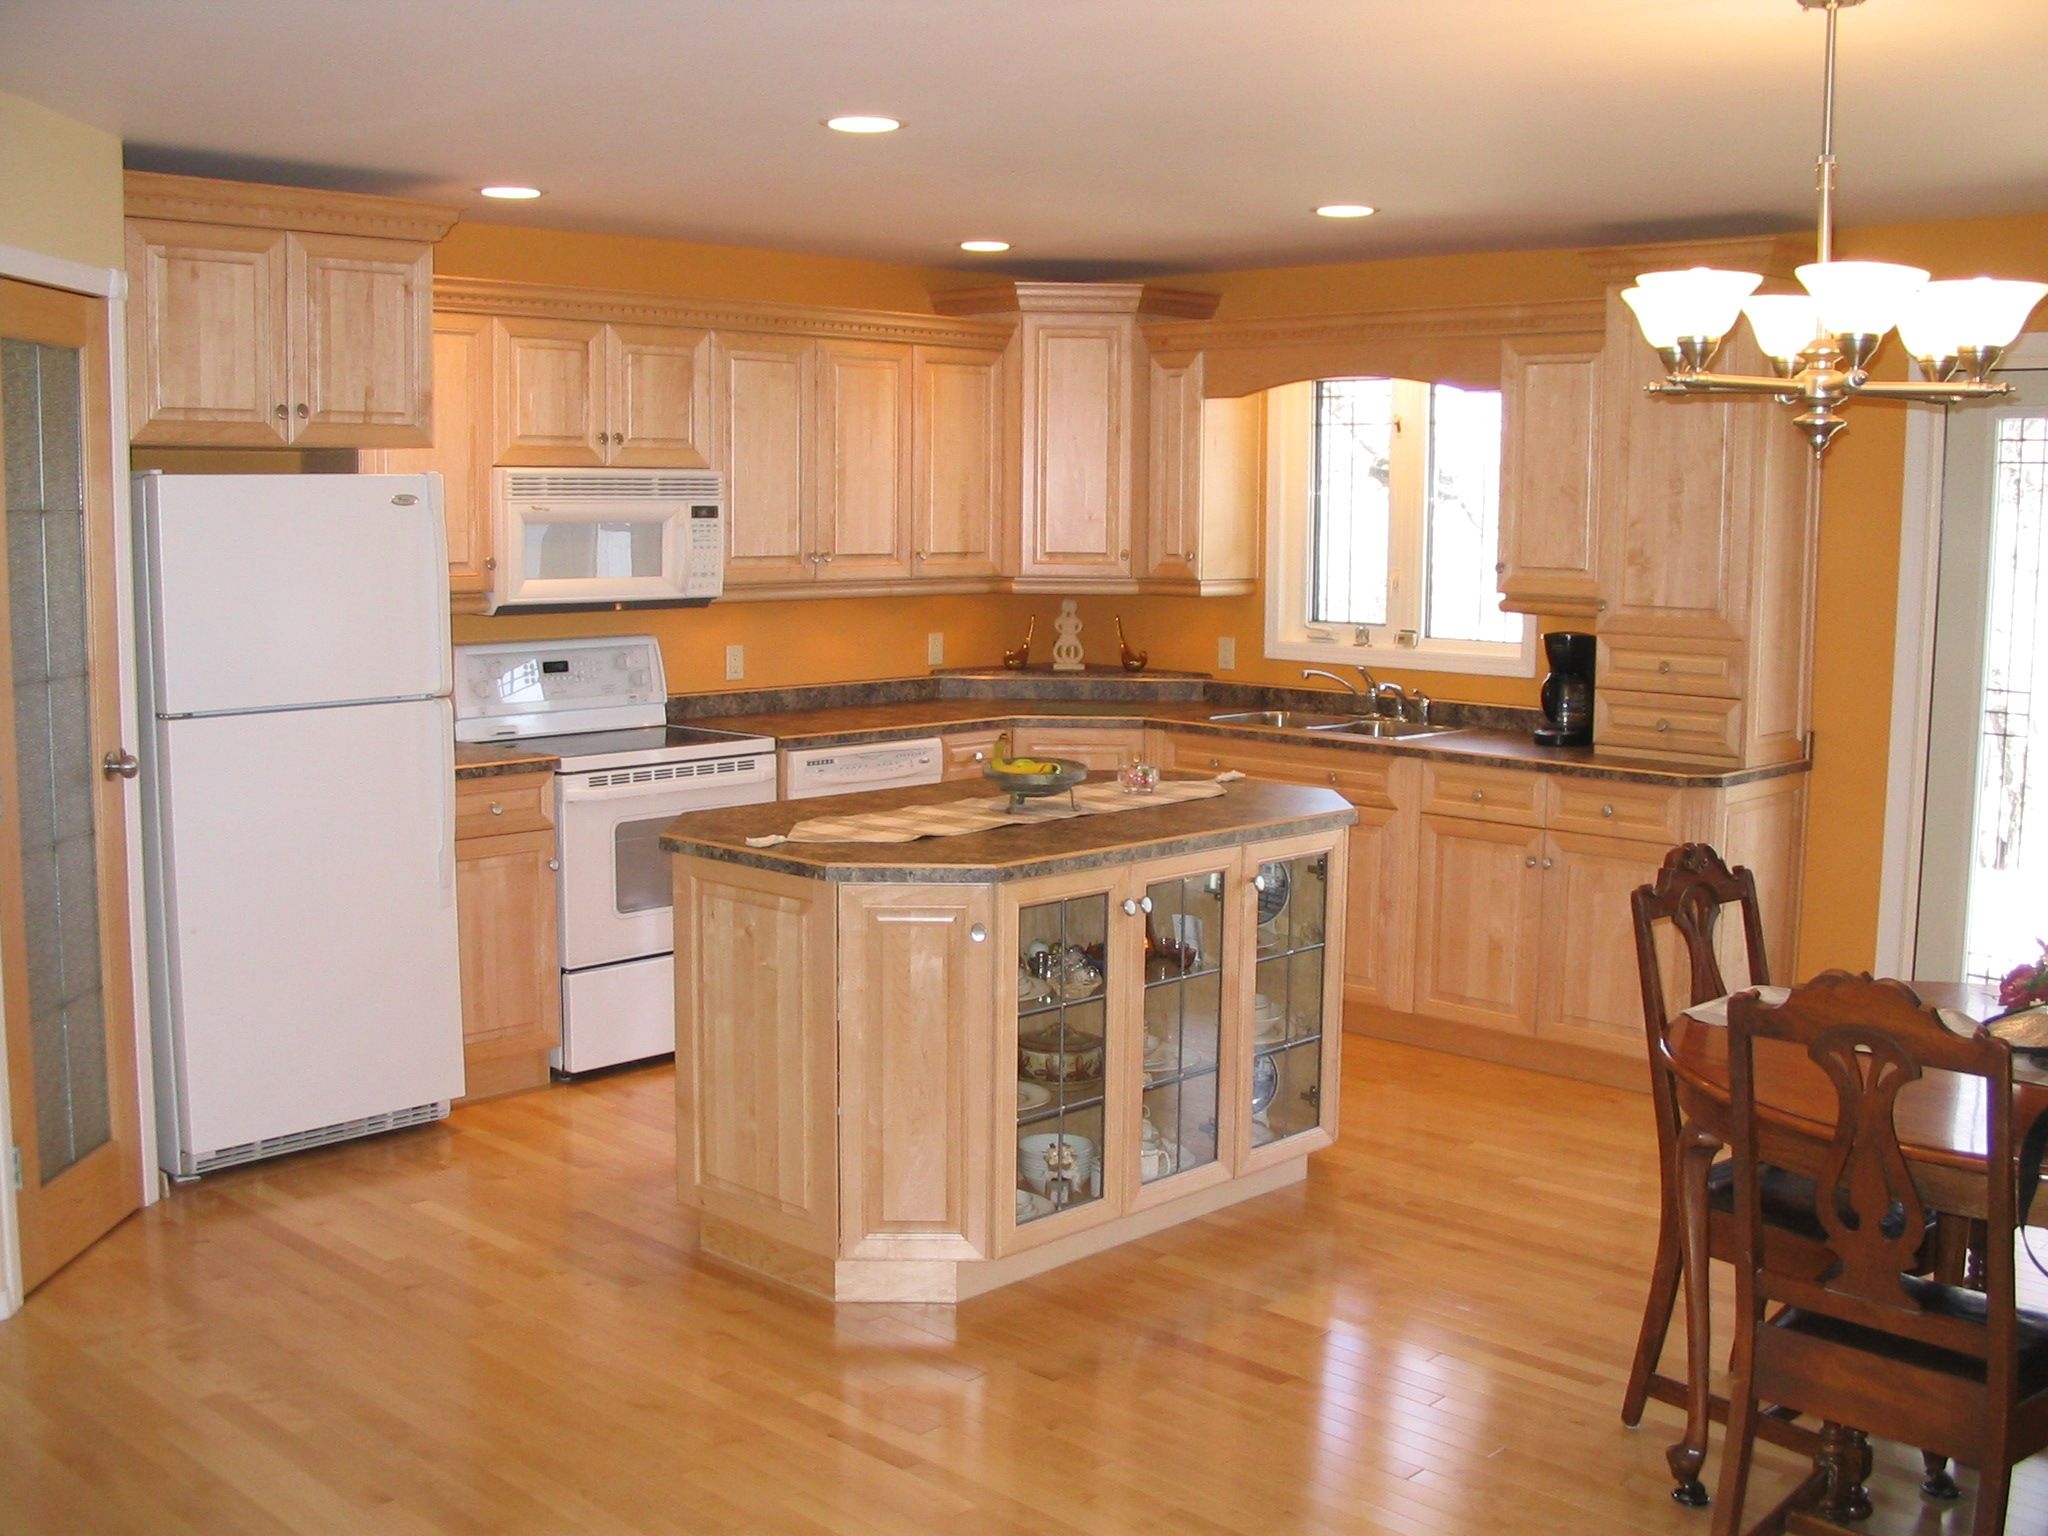 Cabinets: Maple - Natural / Countertops: Formica Laminate - Jamocha ...